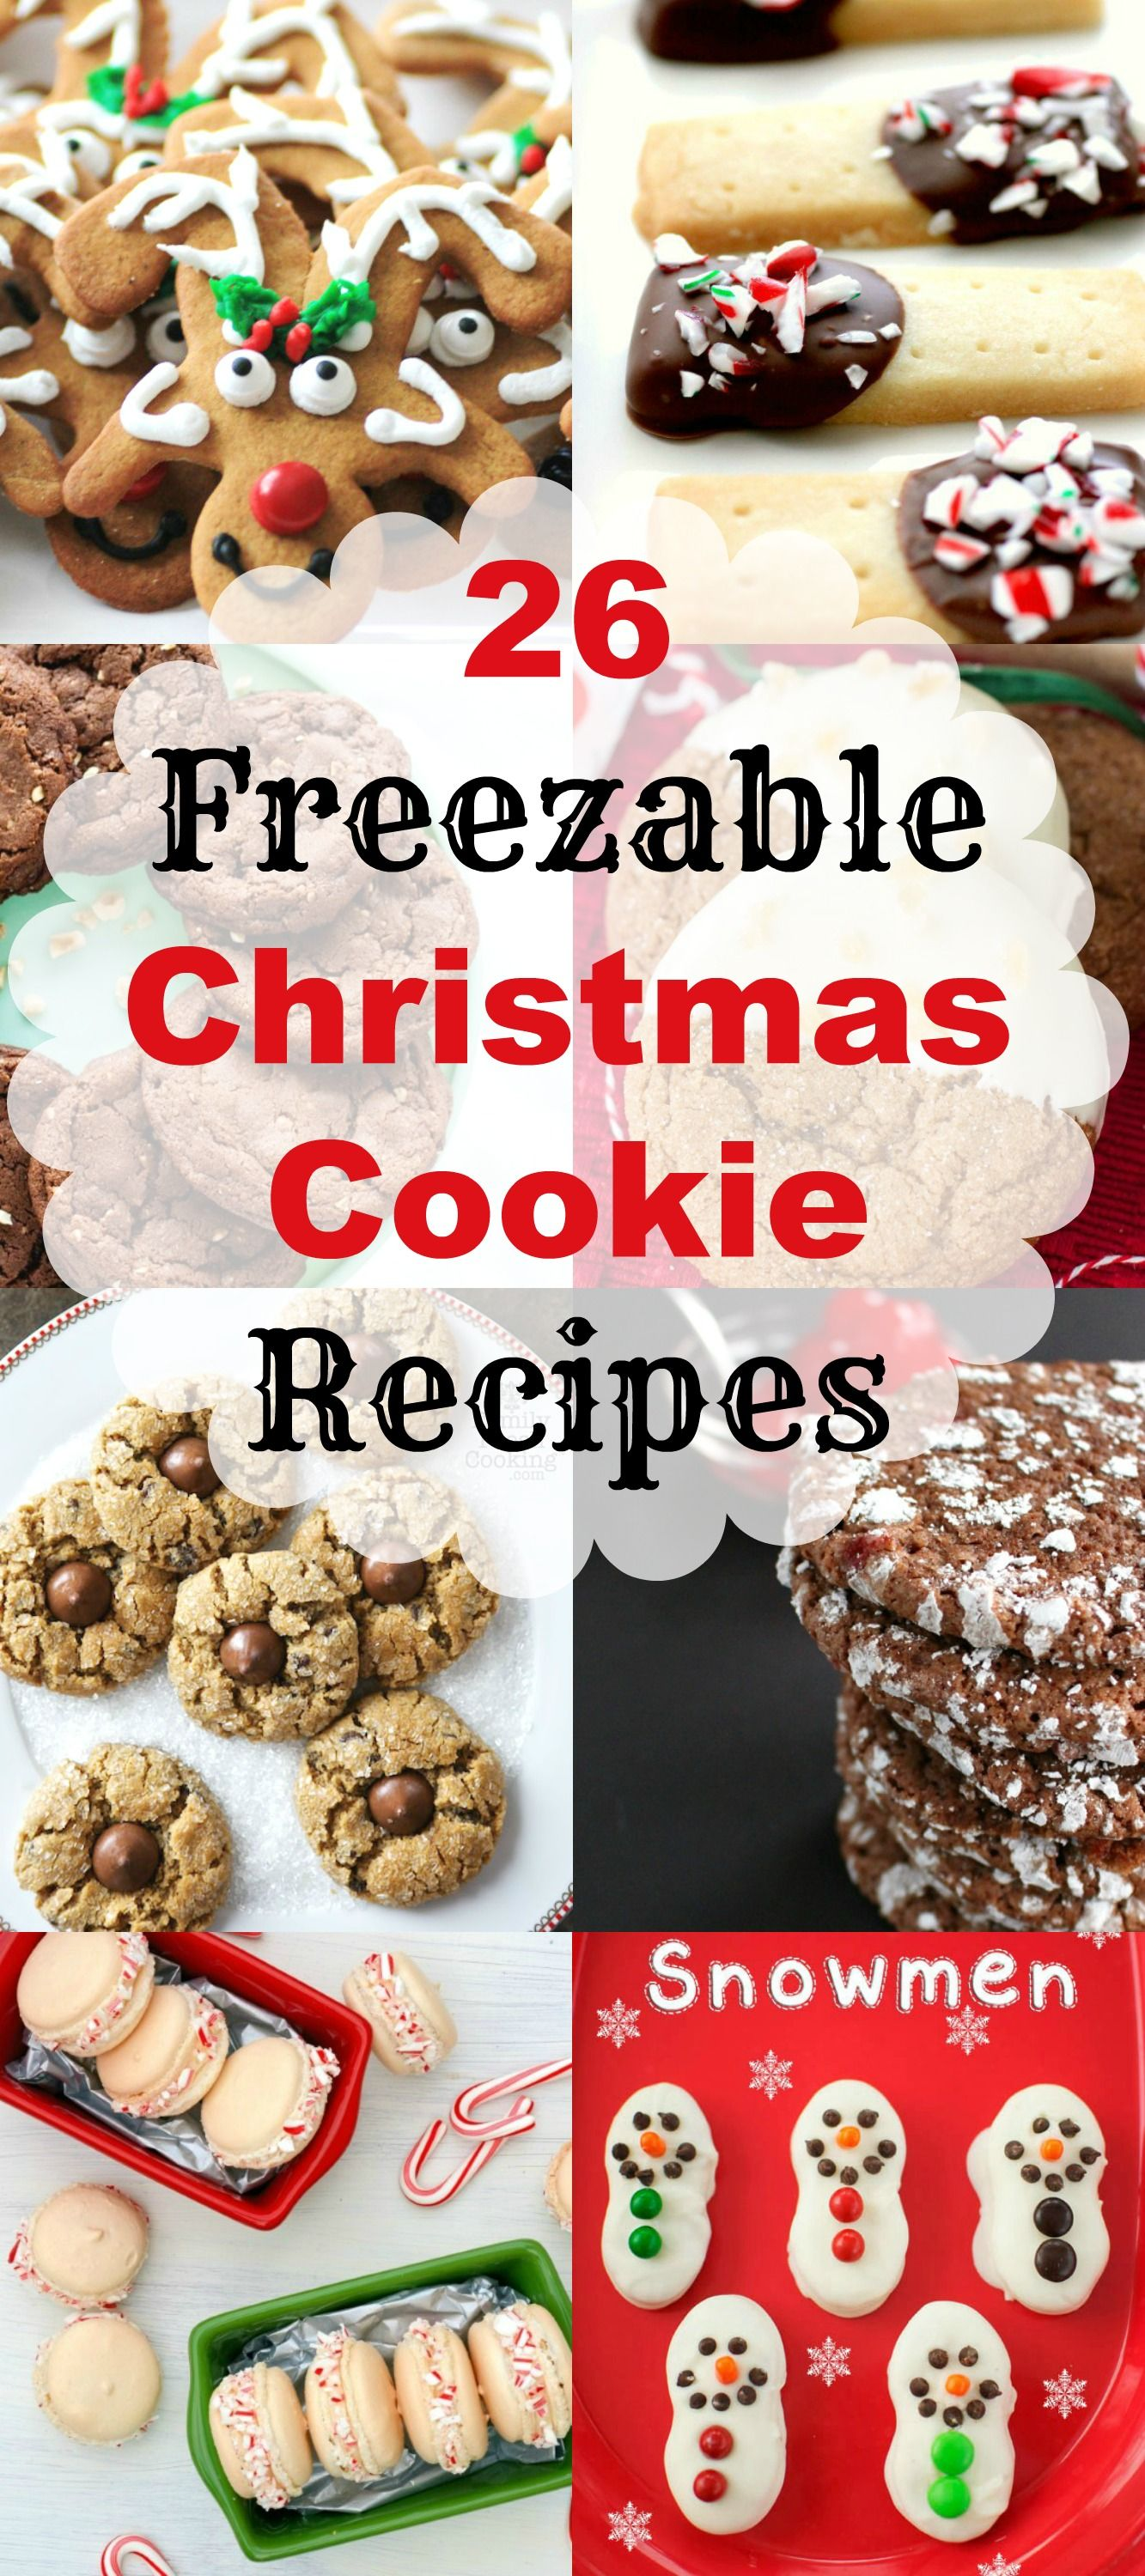 Christmas cookies recipes for gifts